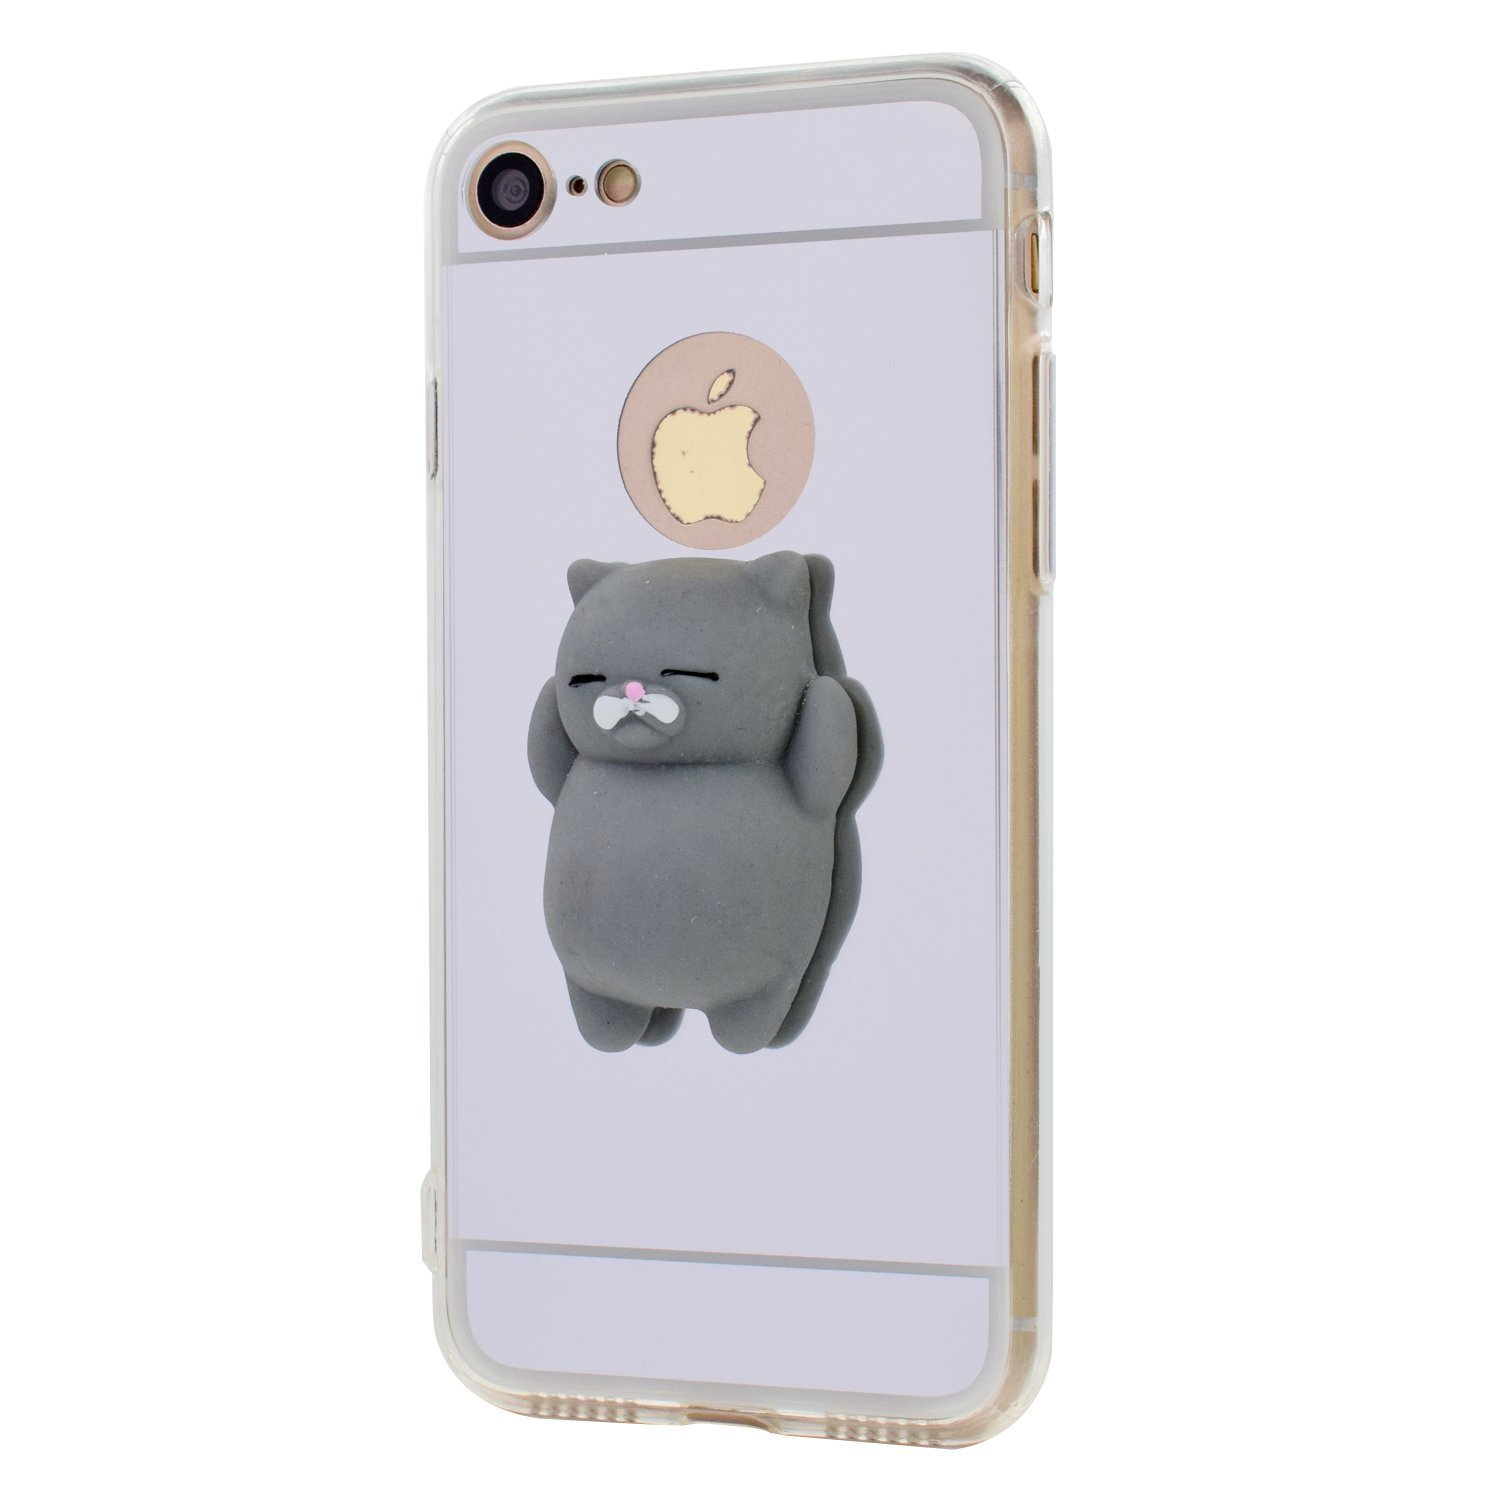 Amazon.com: iPhone SE Case, iPhone 5S / 5 Cases, Jonwelsy Squishy 3D Kawaii Cute Cat Phone Shell Soft Silicon TPU Squeeze Toy Stress Relieve Mirror Back ...